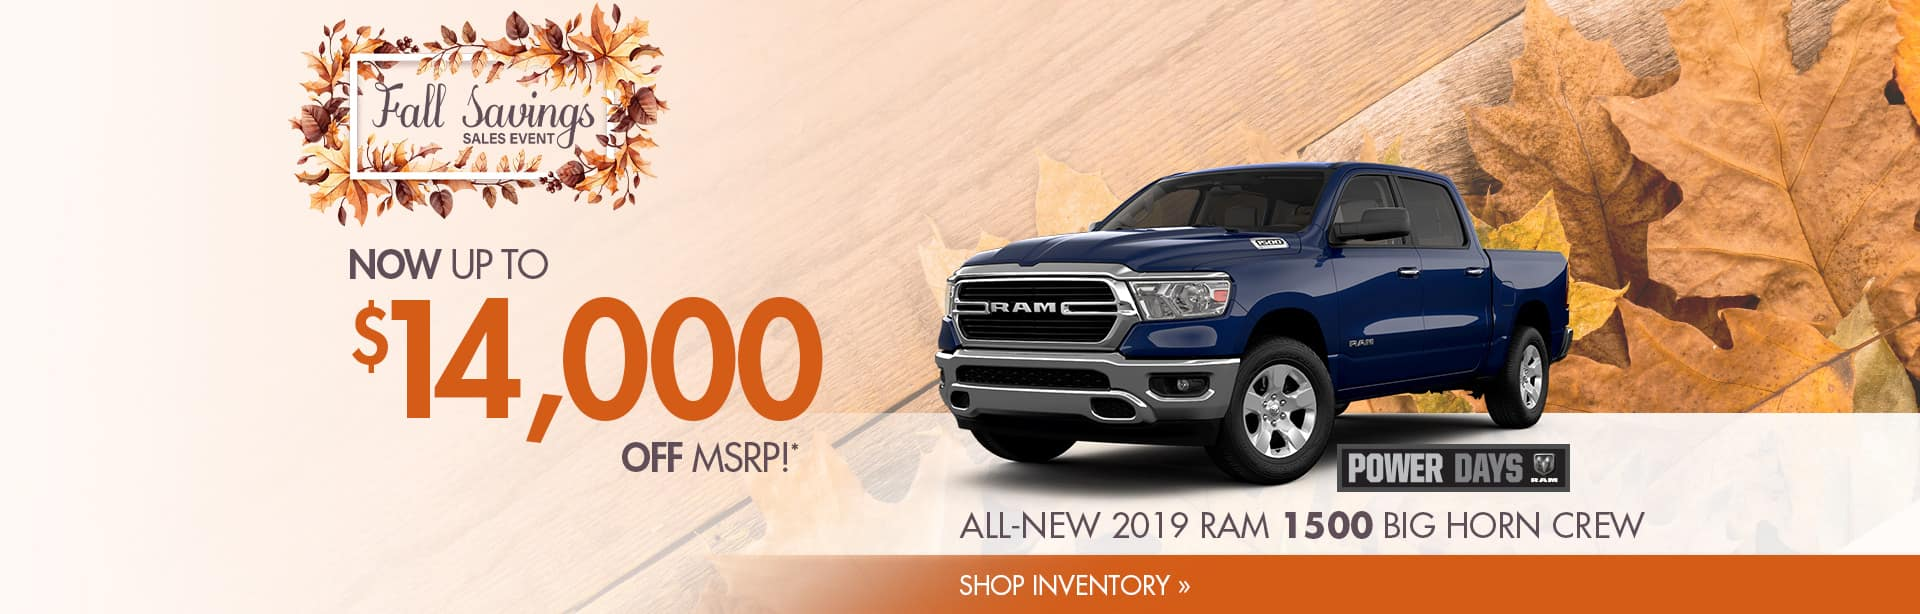 Save Up to $4,000 on an All-New RAM Truck.